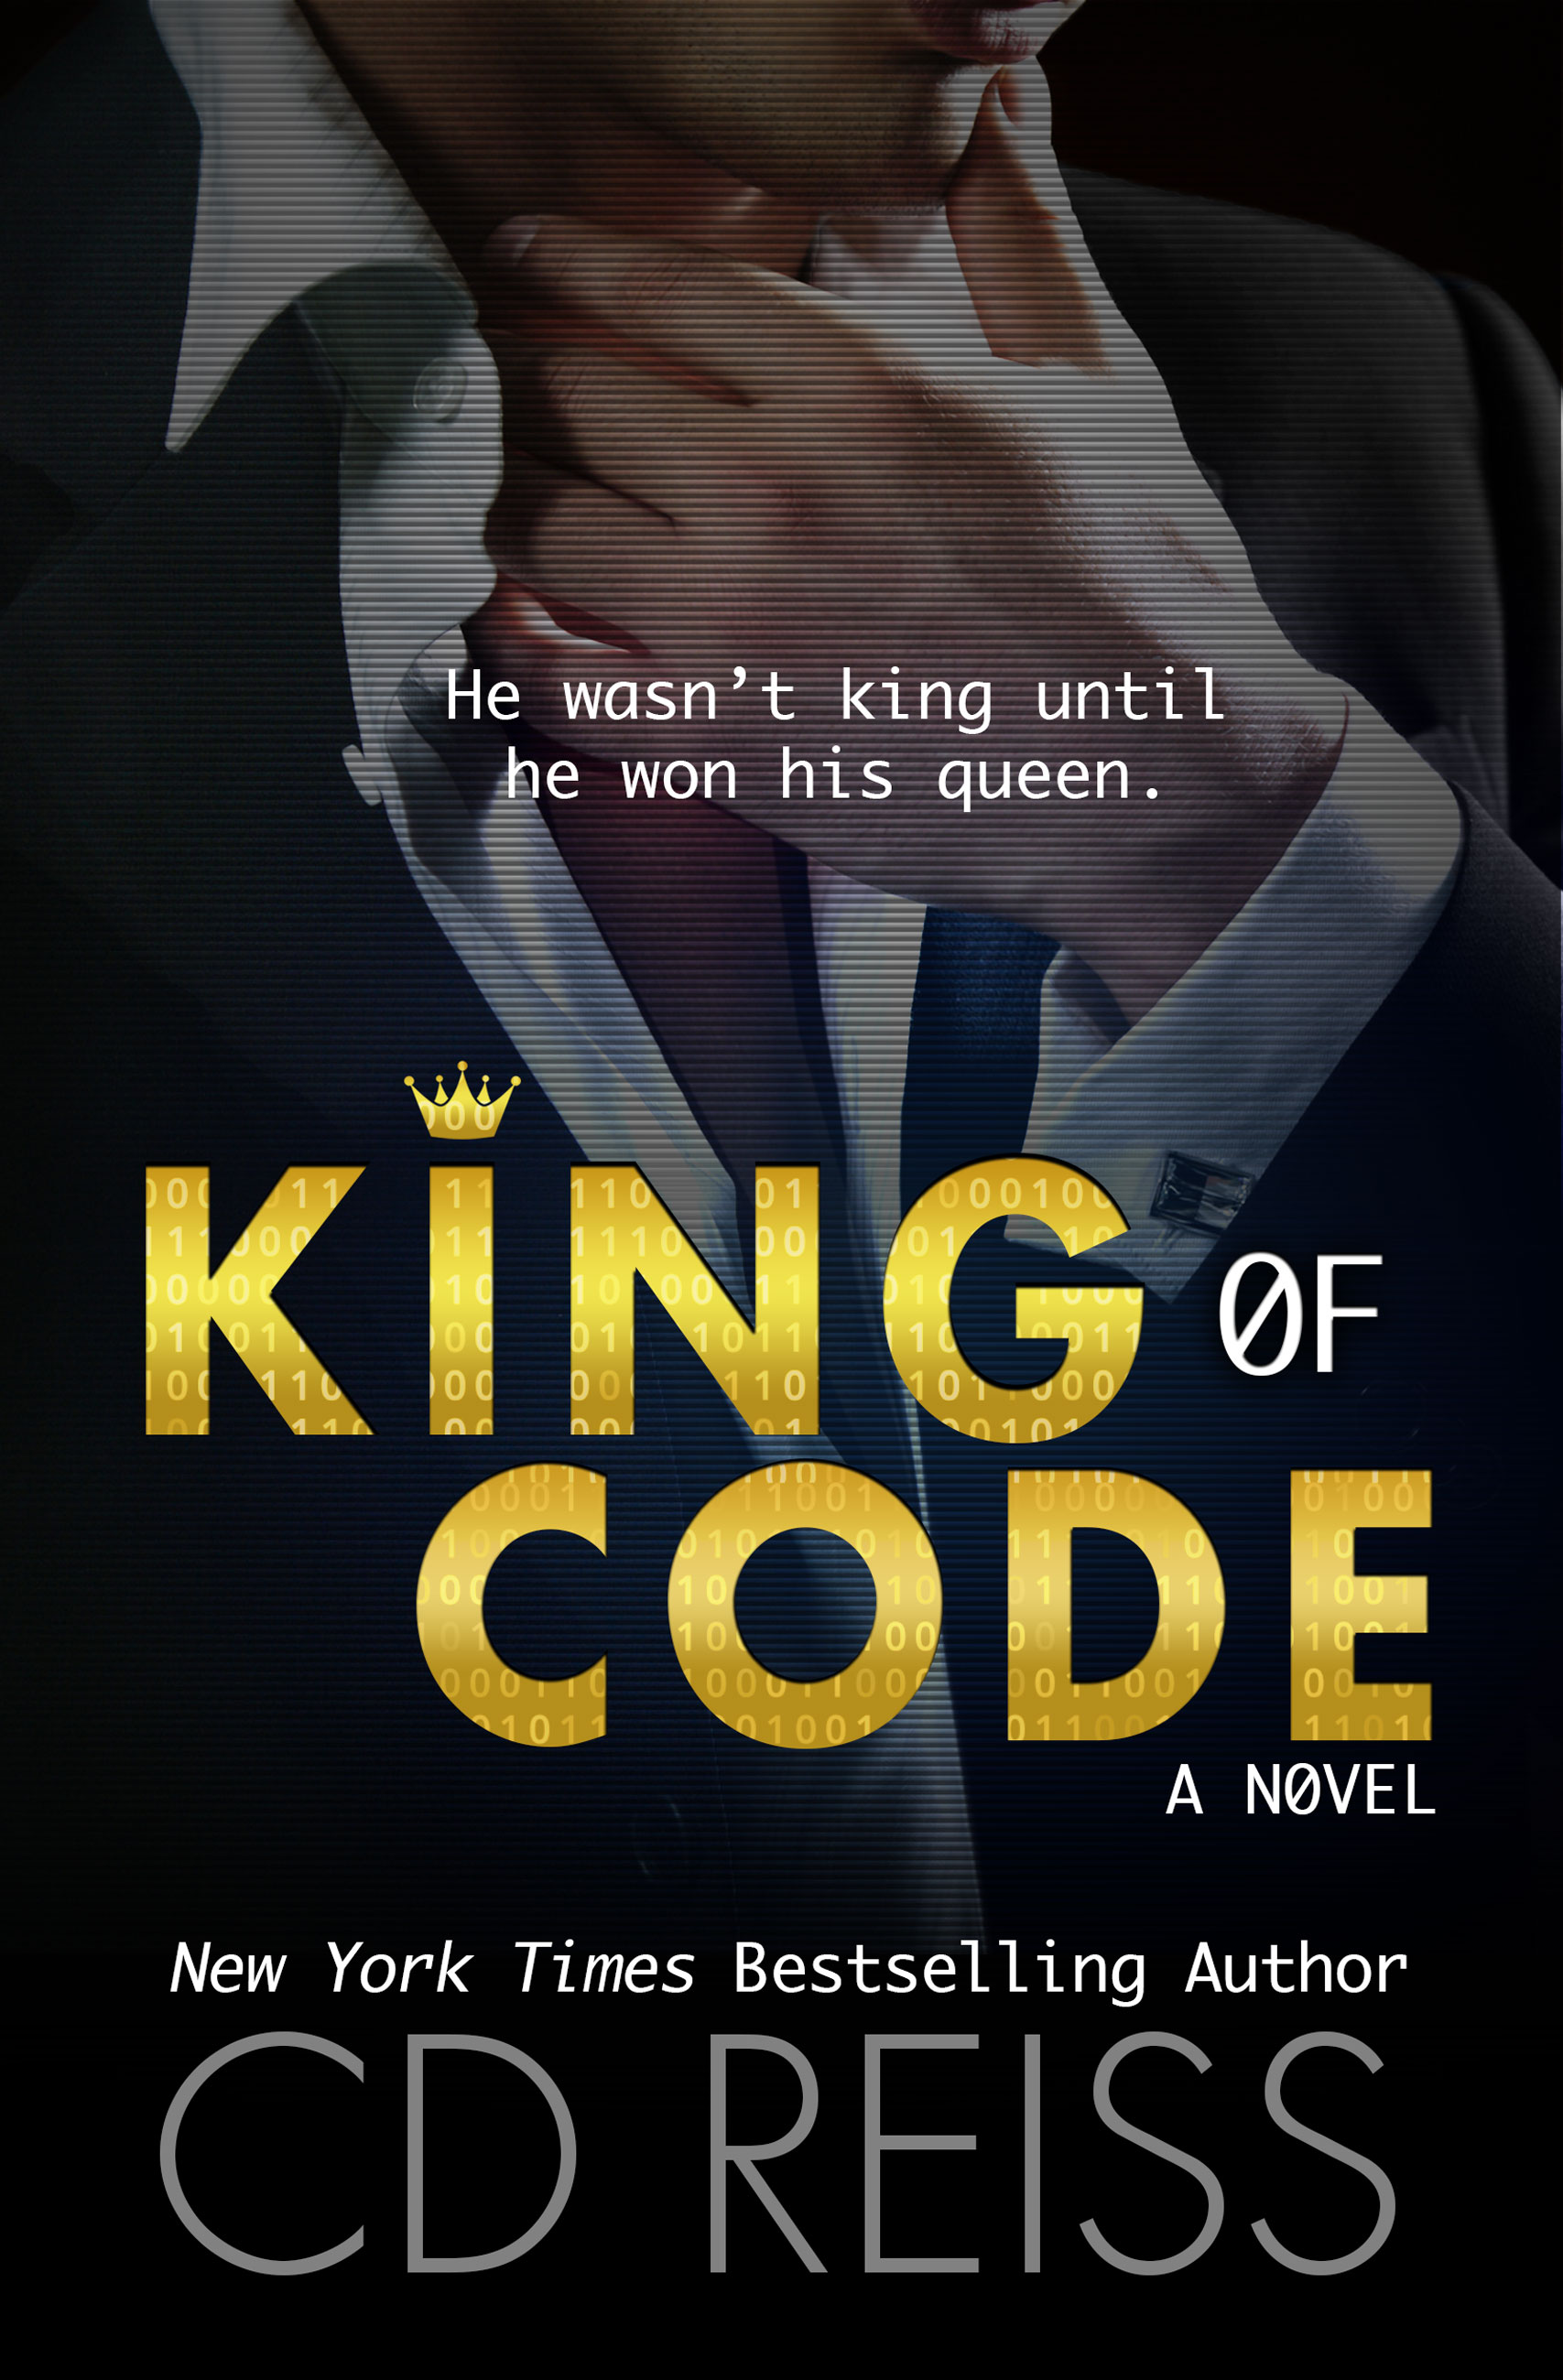 King of Code, book one in a series of sexy new standalones by New York Times bestselling Romance Author CD Reiss